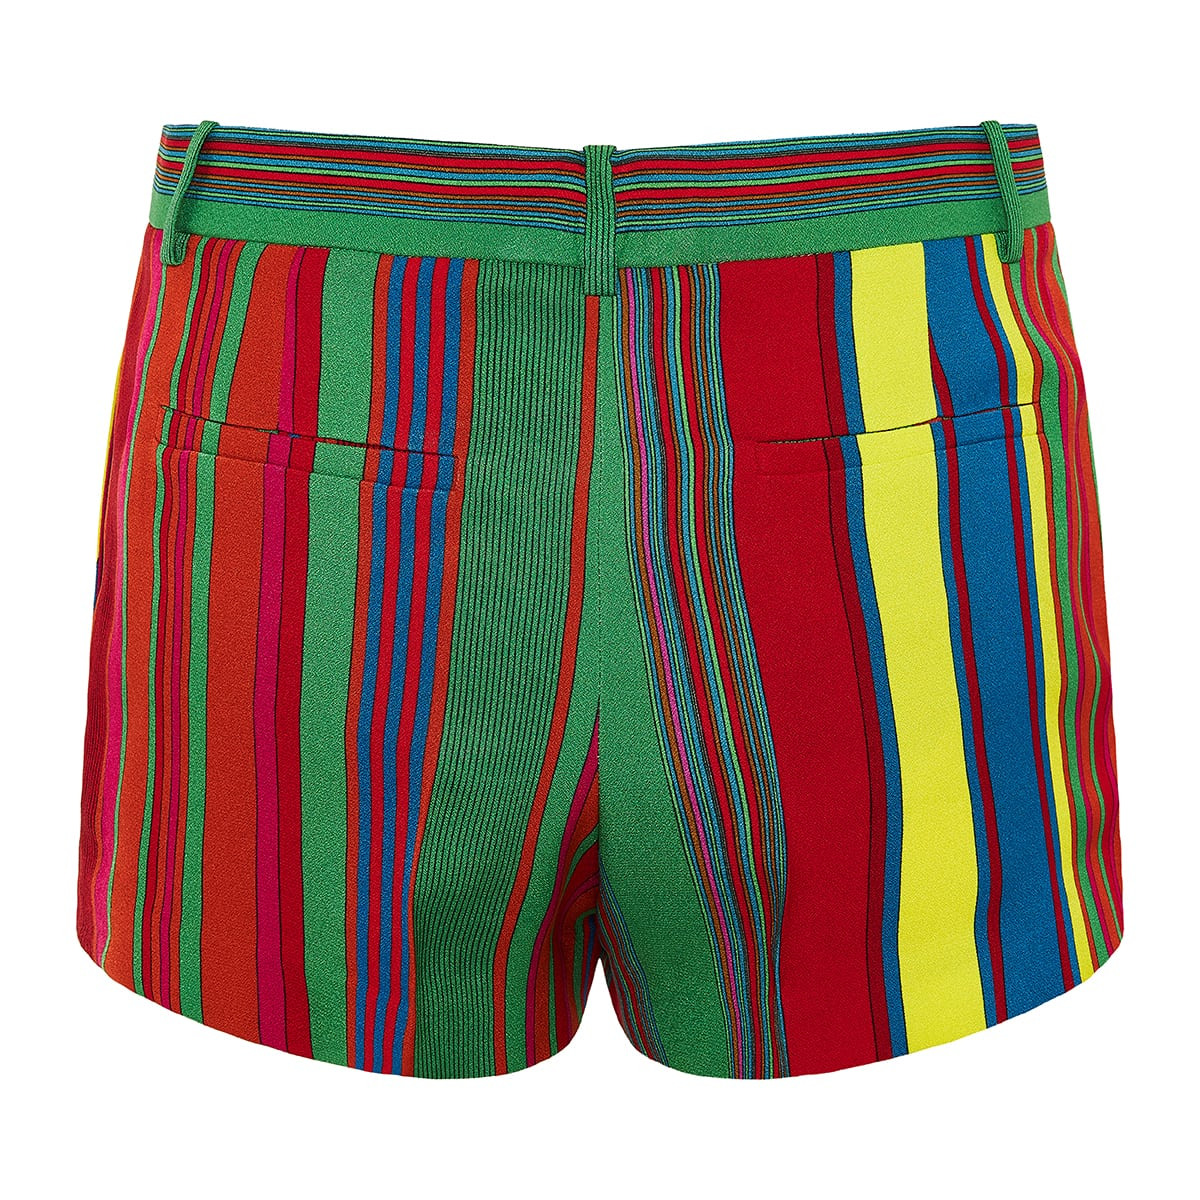 GV striped mini shorts